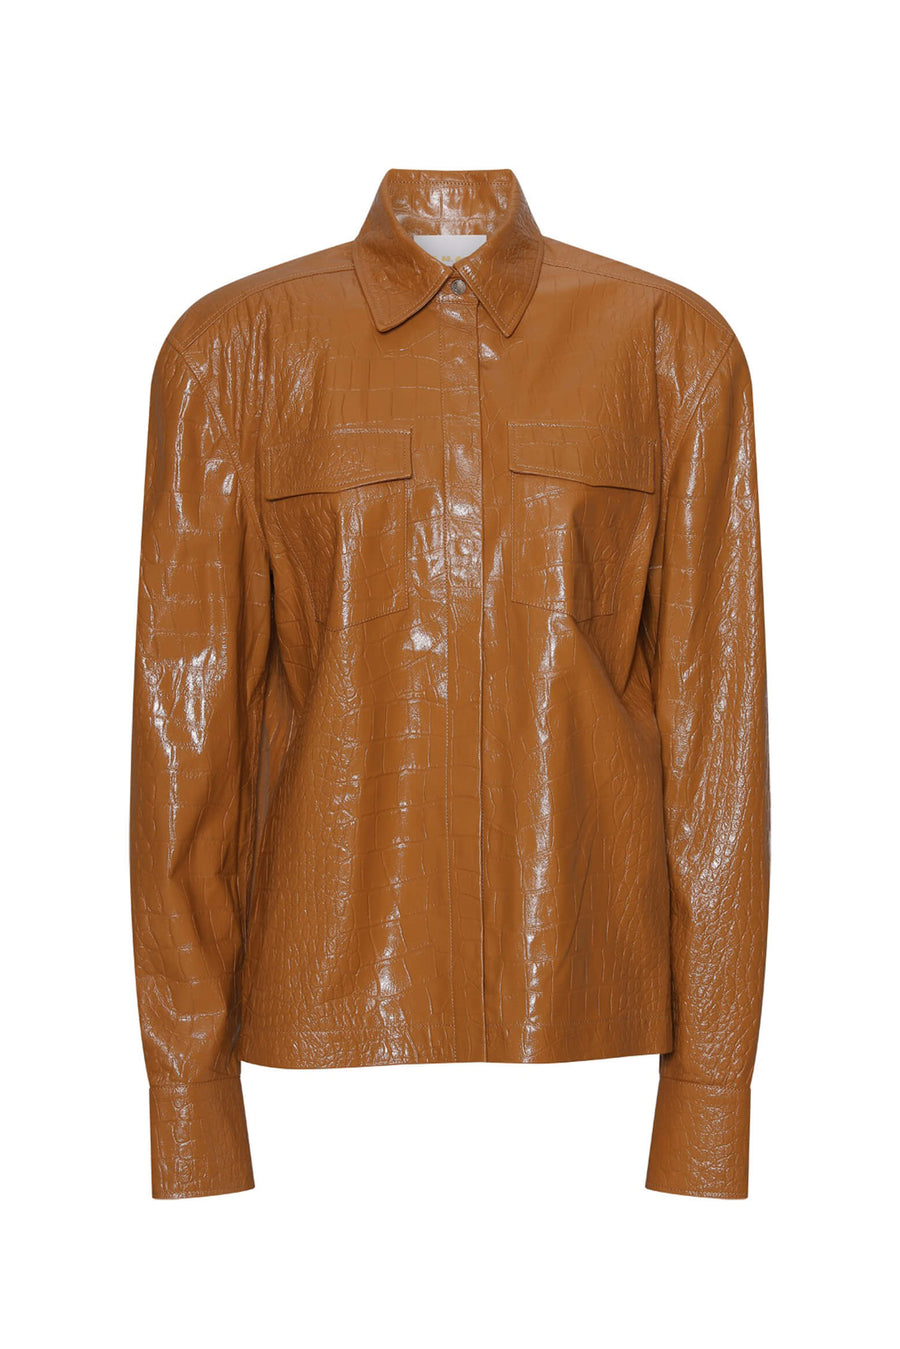 REMAIN Carina Leather Shirt from The New Trend